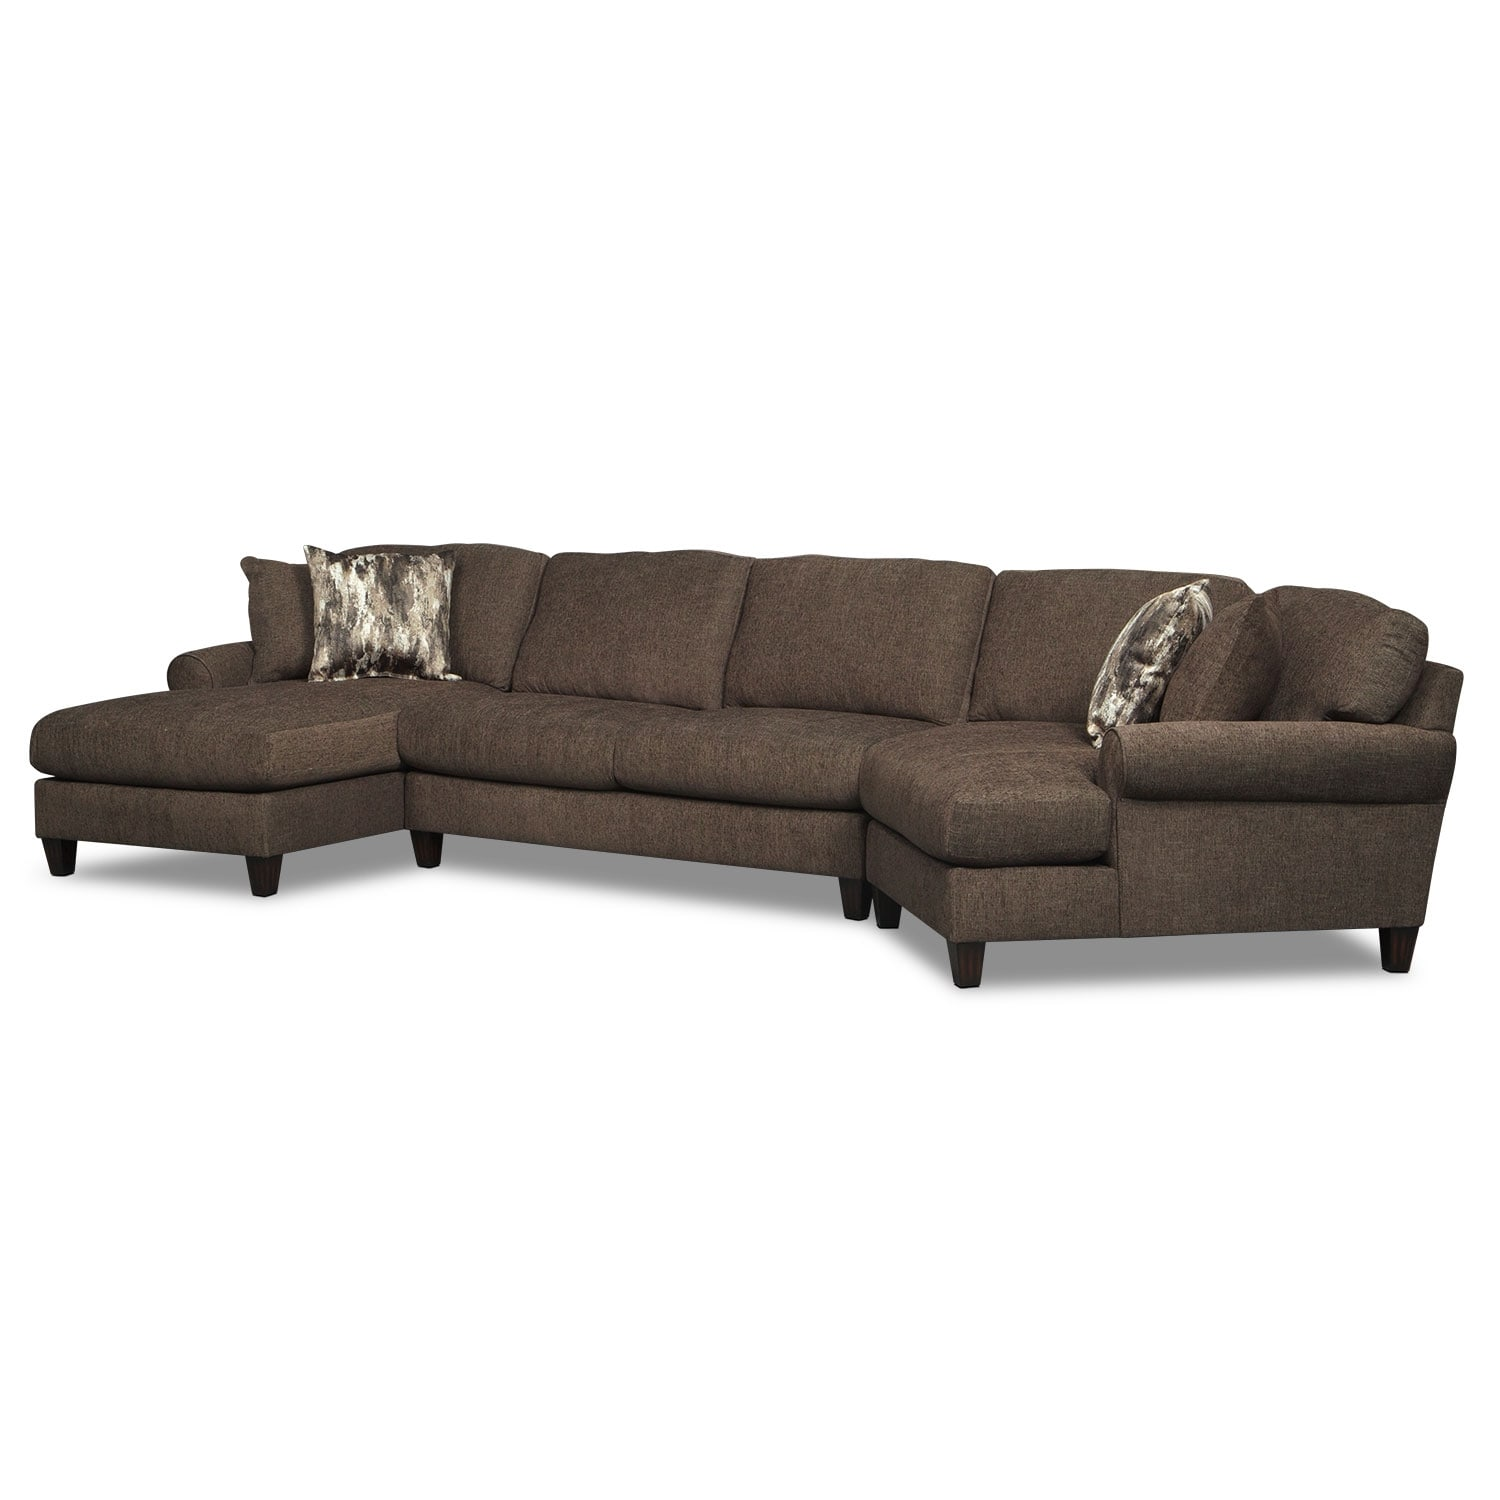 Value City Living Room Sets Sectional Sofas Value City Funiture Value City Furniture